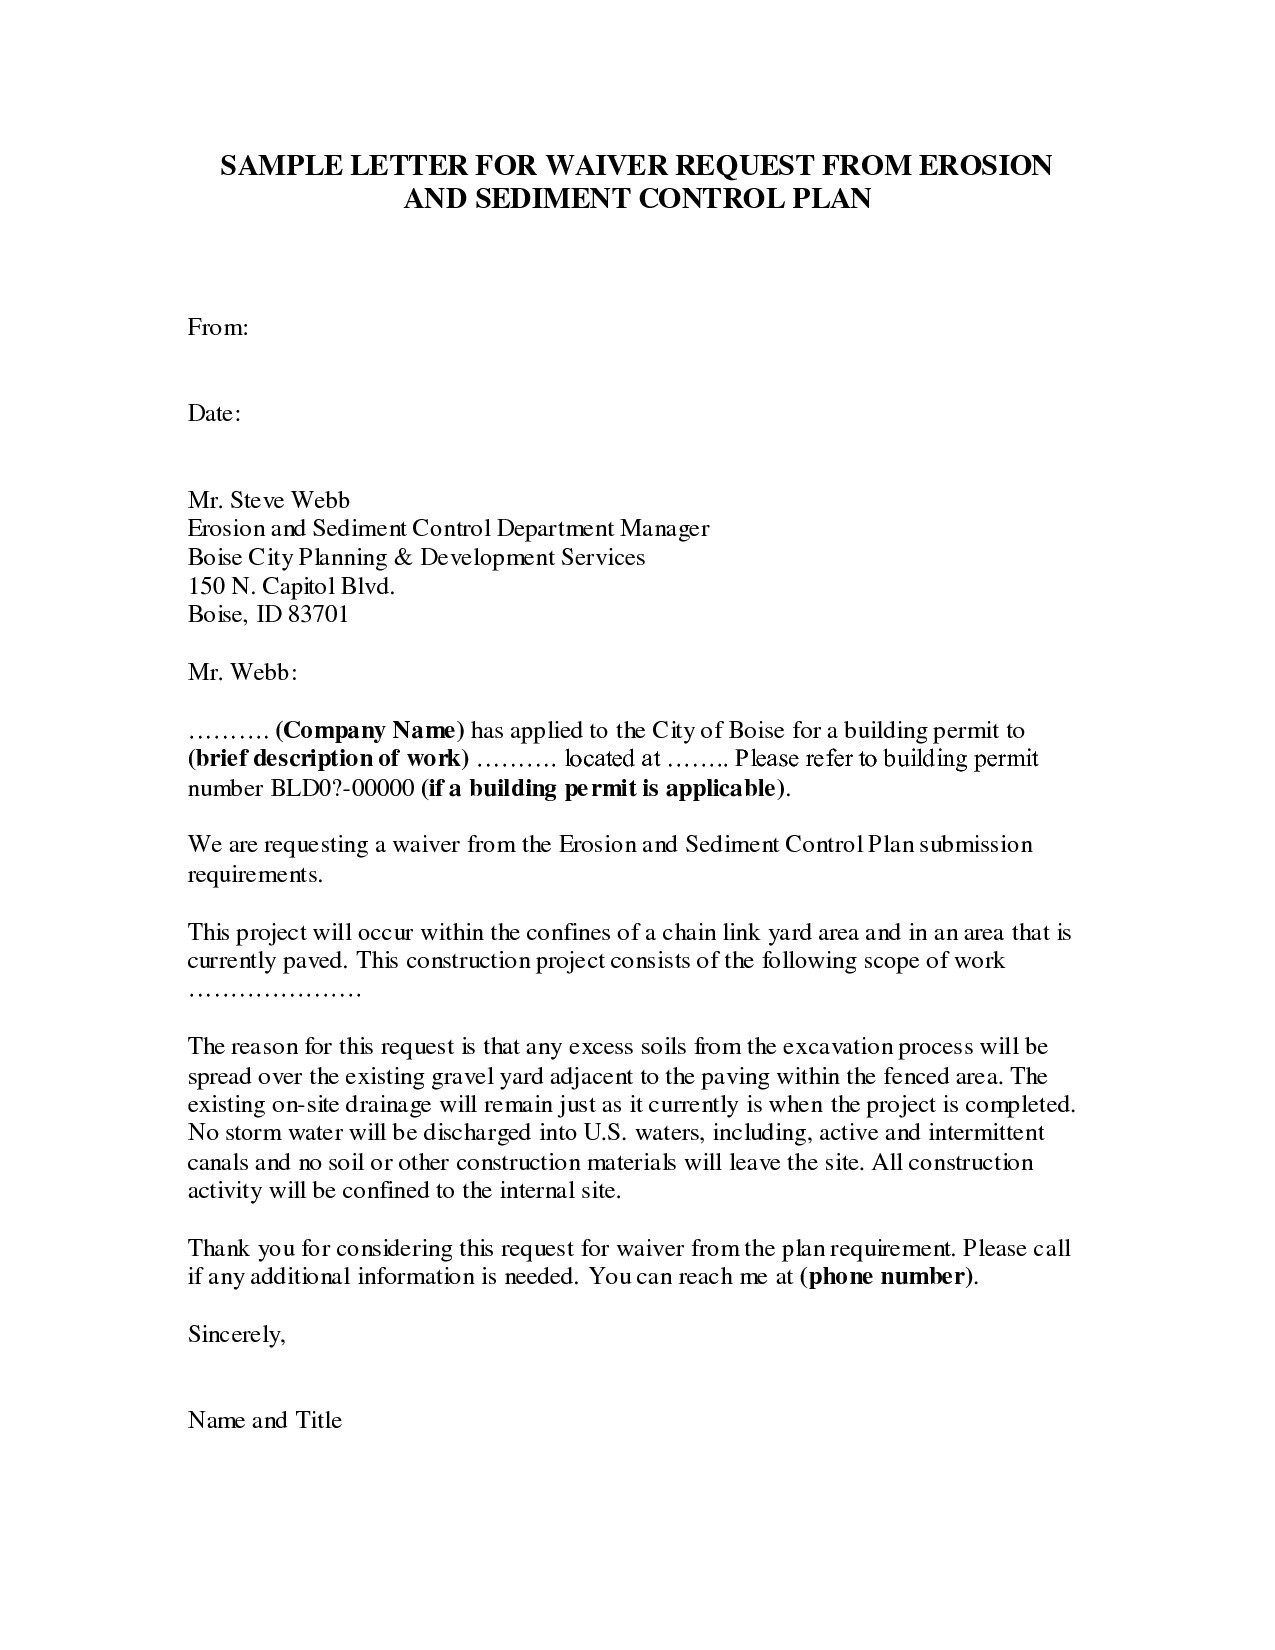 Contract Cancellation Letter Template Free - 31 Awesome Termination Letter Sample